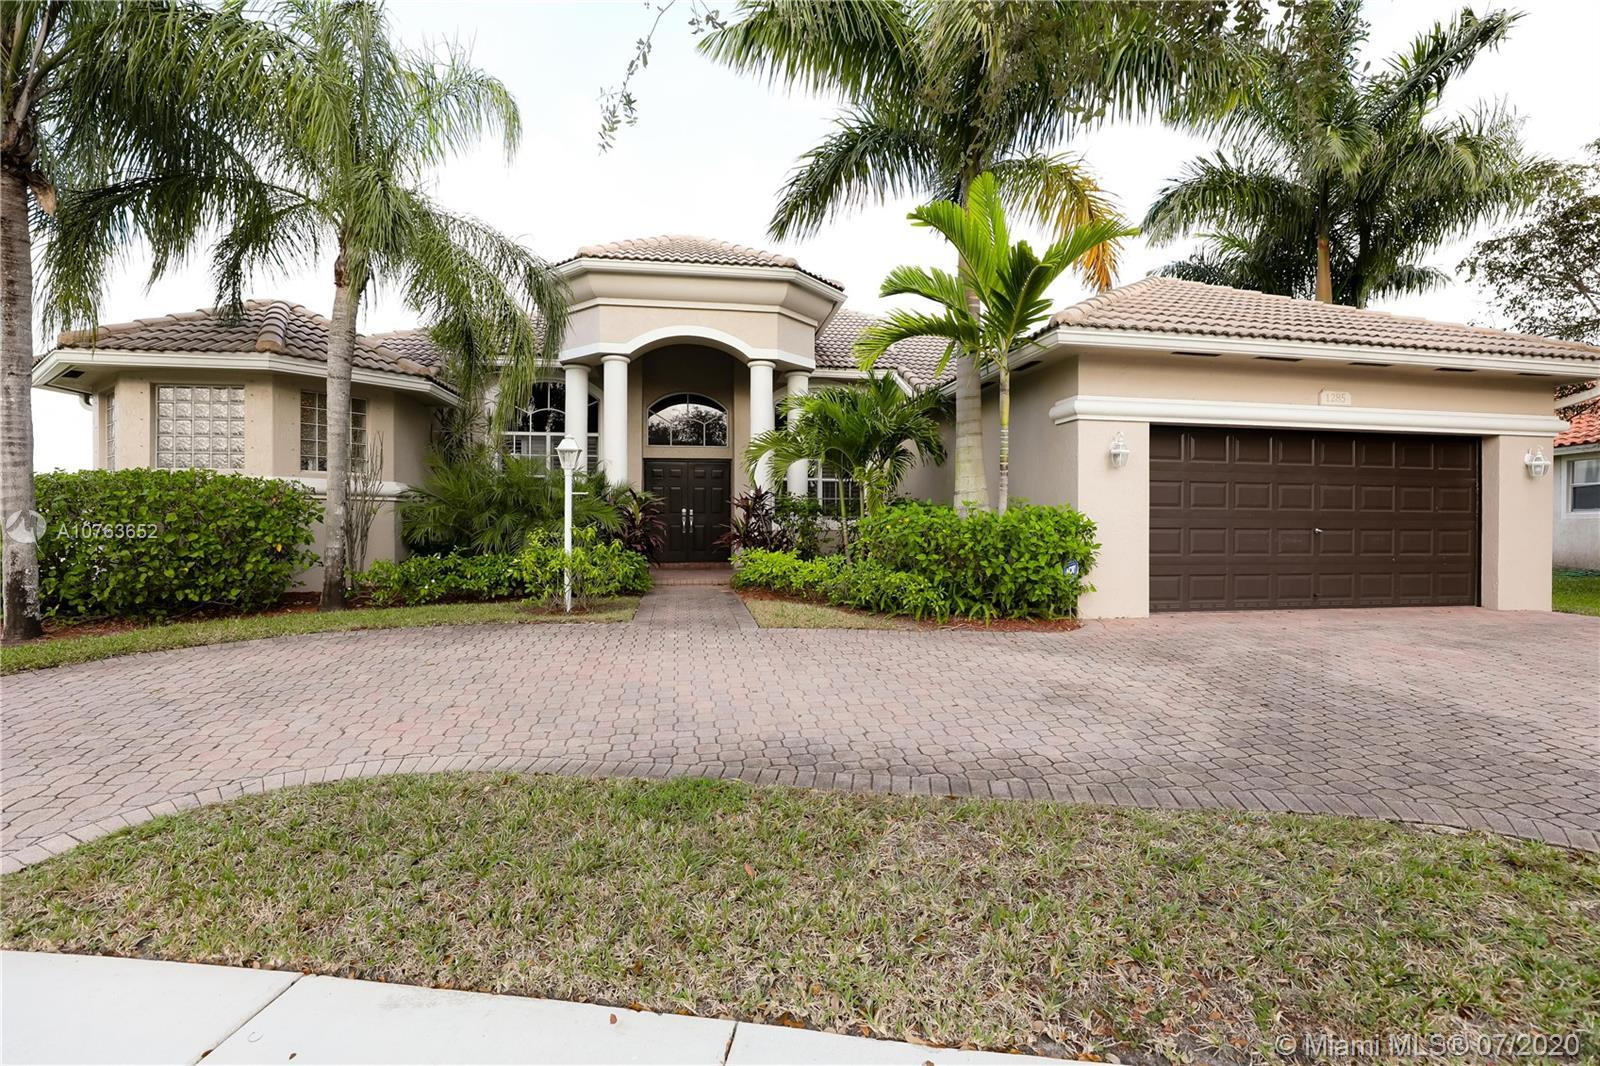 LOCATED IN THE DESIRED COMMUNITY OF PEMBROKE FALLS, THIS ONE STORY 4 BEDROOM HOUSE IS A SPECTACULAR